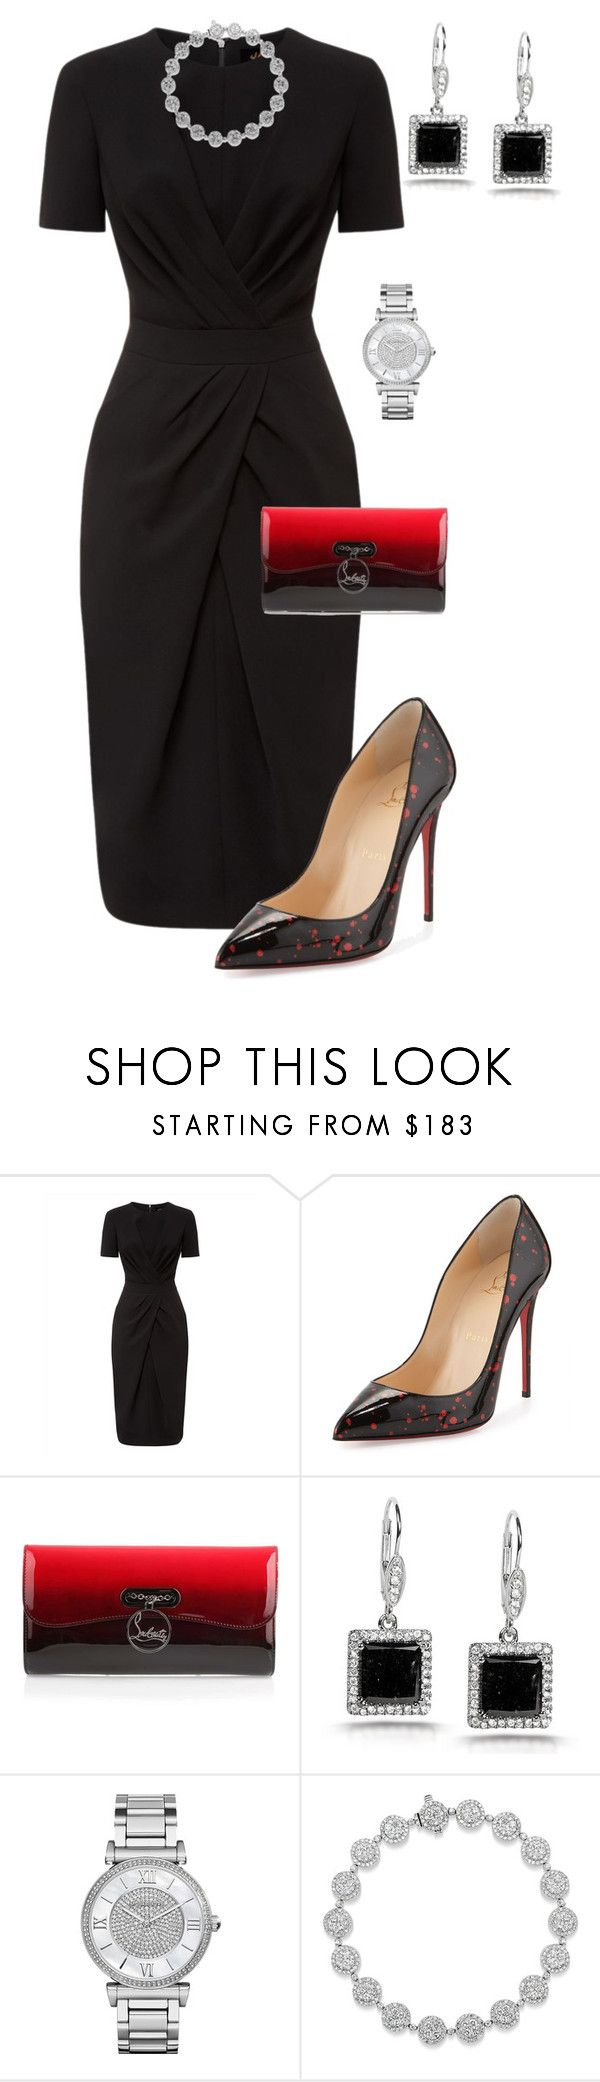 """""""Untitled #500"""" by angela-vitello ❤ liked on Polyvore featuring Jaeger, Christian Louboutin, Kobelli and Michael Kors"""